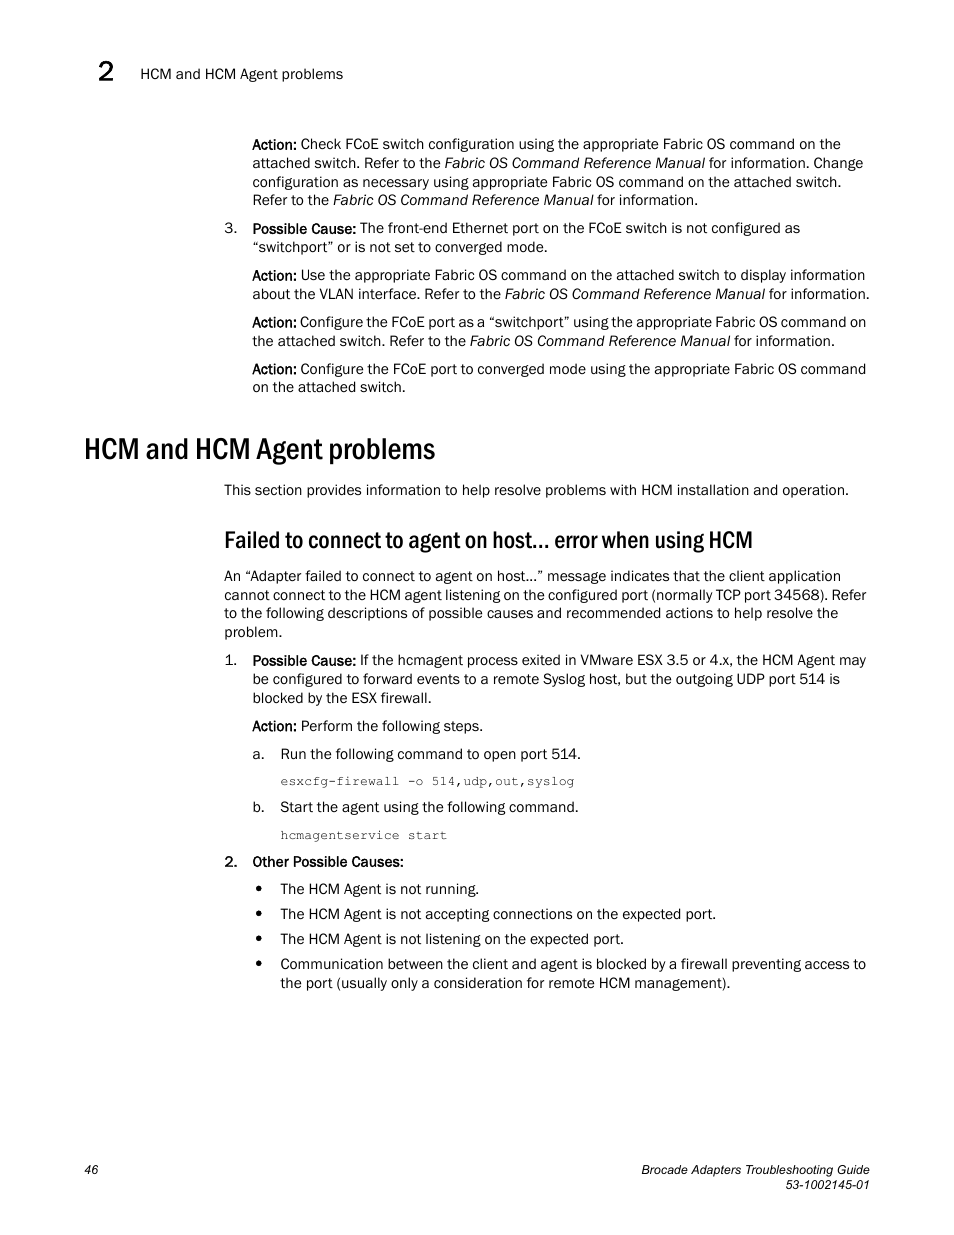 Hcm and hcm agent problems | Dell Brocade Adapters User